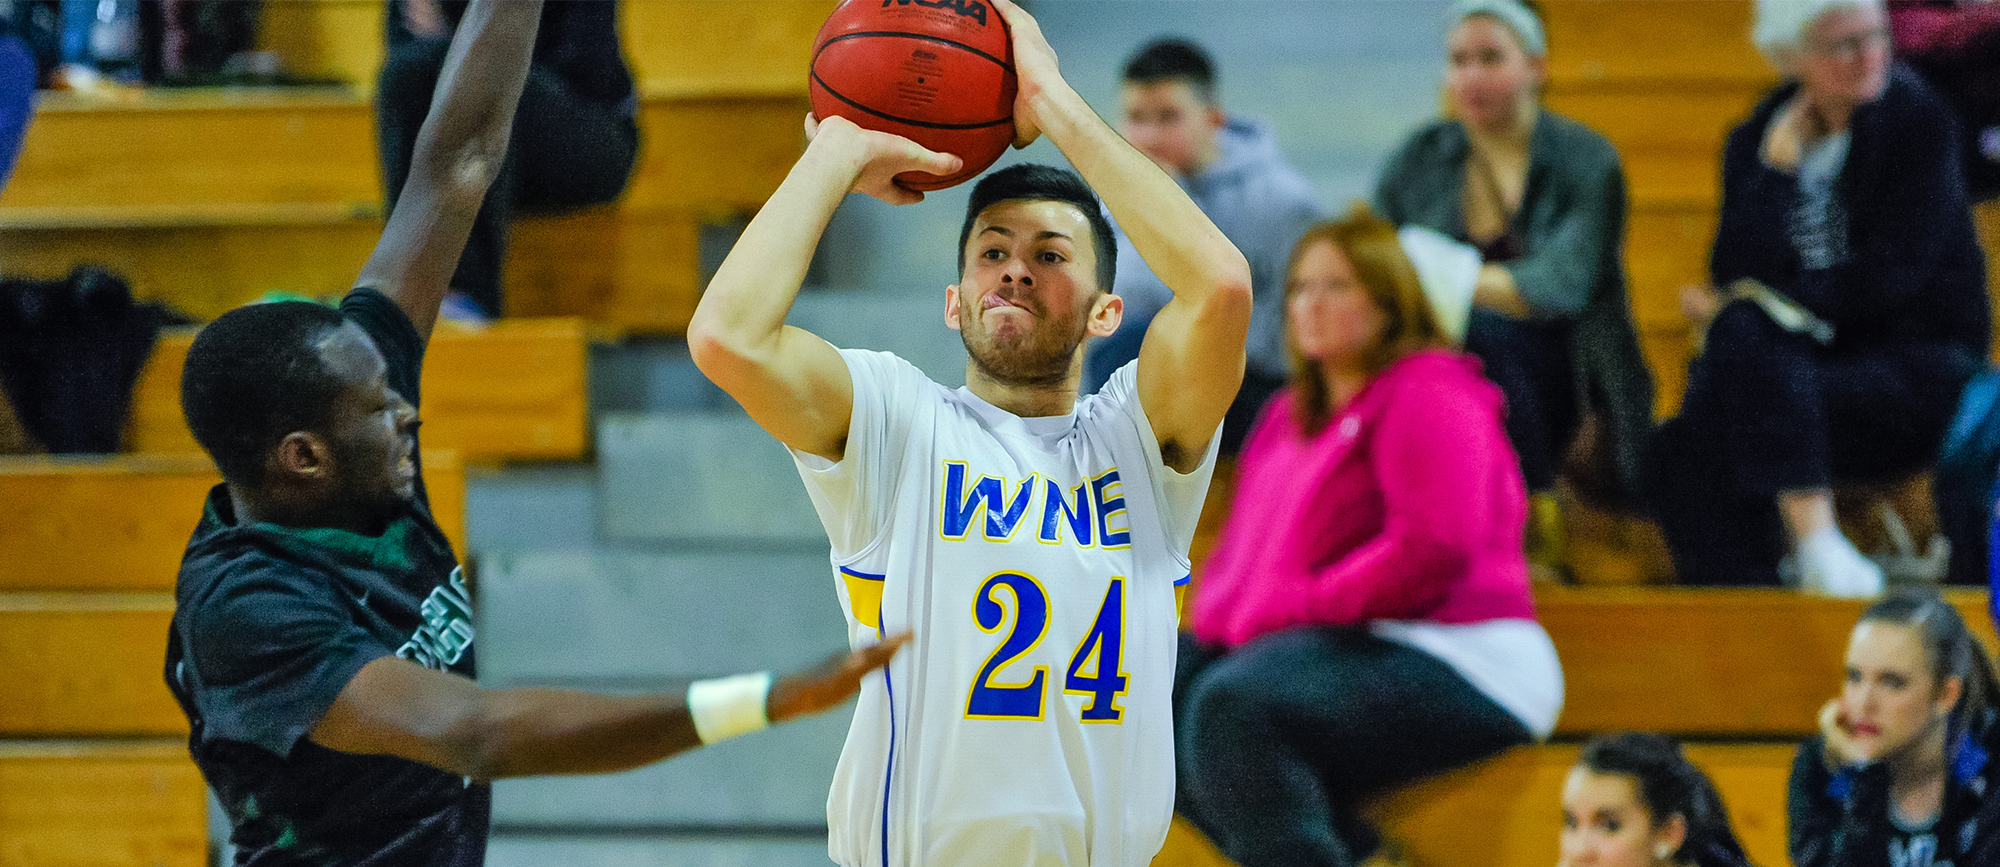 Springfield Pulls Away Late in 80-69 Win over Western New England